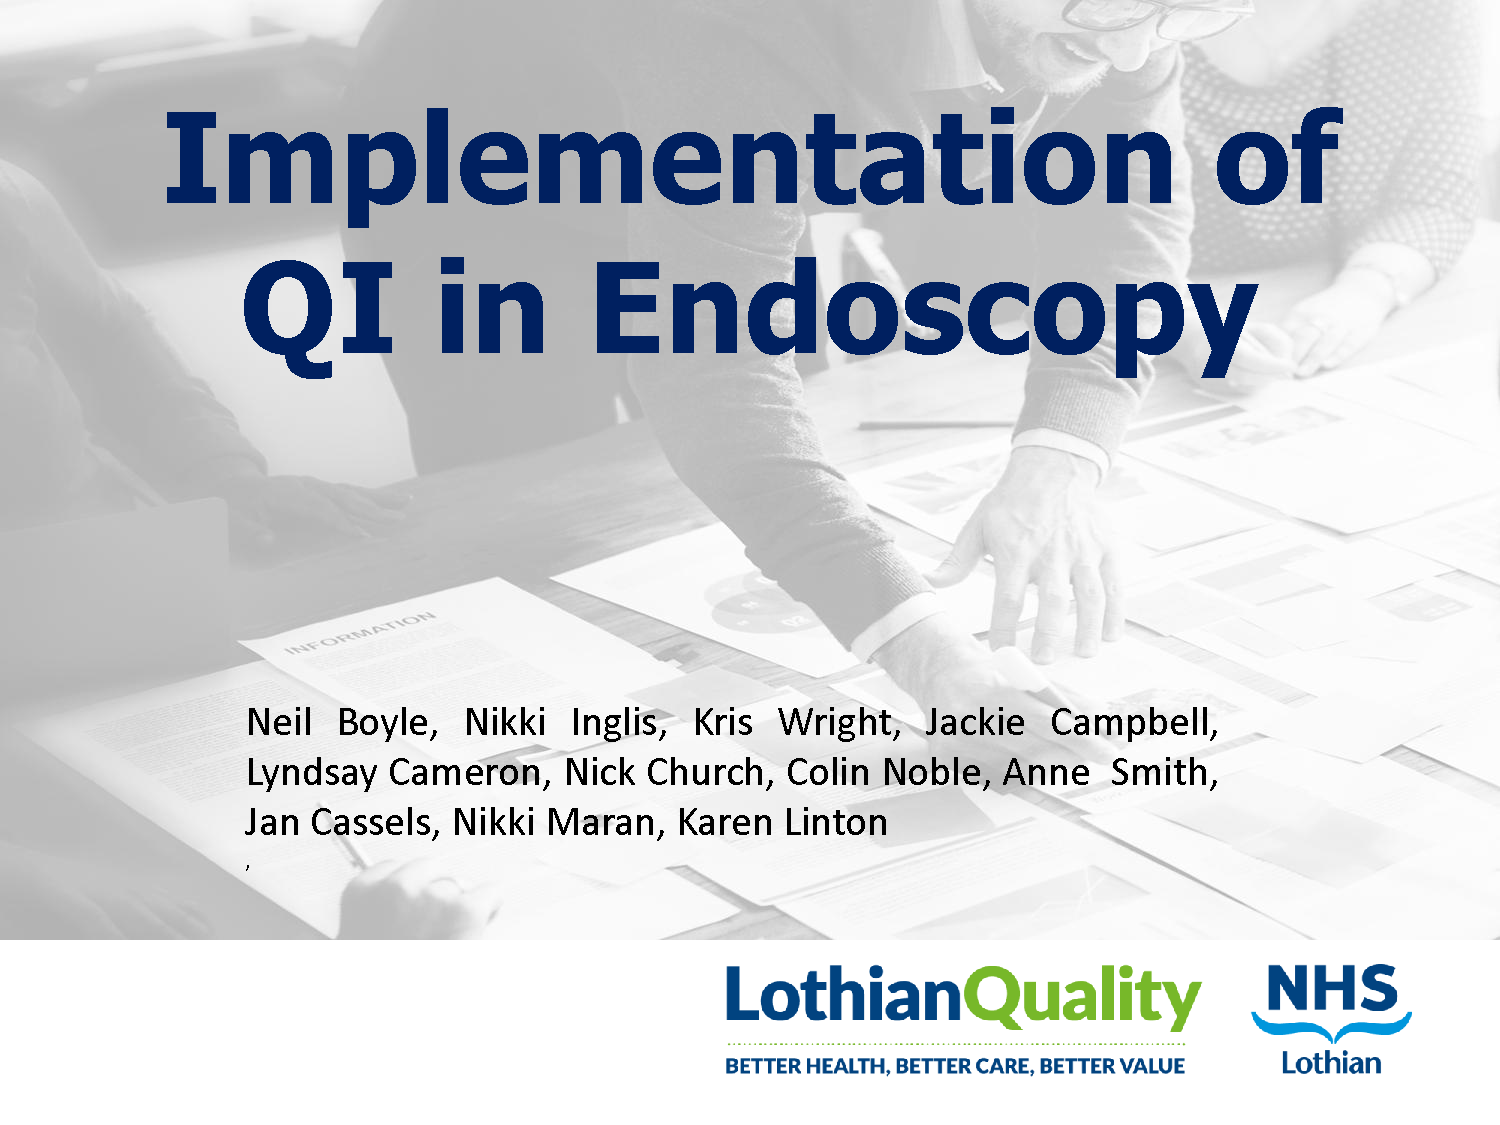 Download here Colin Noble's presentation on the Implementation of QI in Endoscopy. -